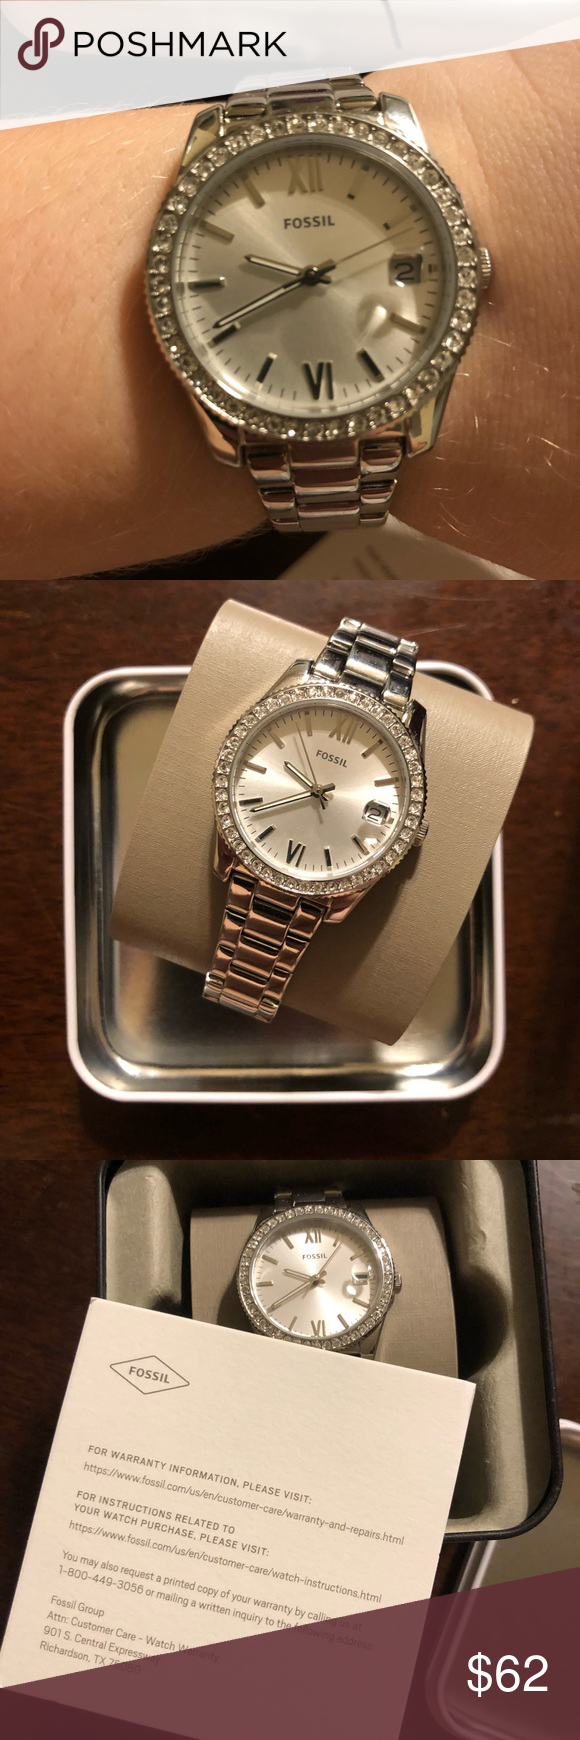 How To Get Links Out Of A Fossil Watch